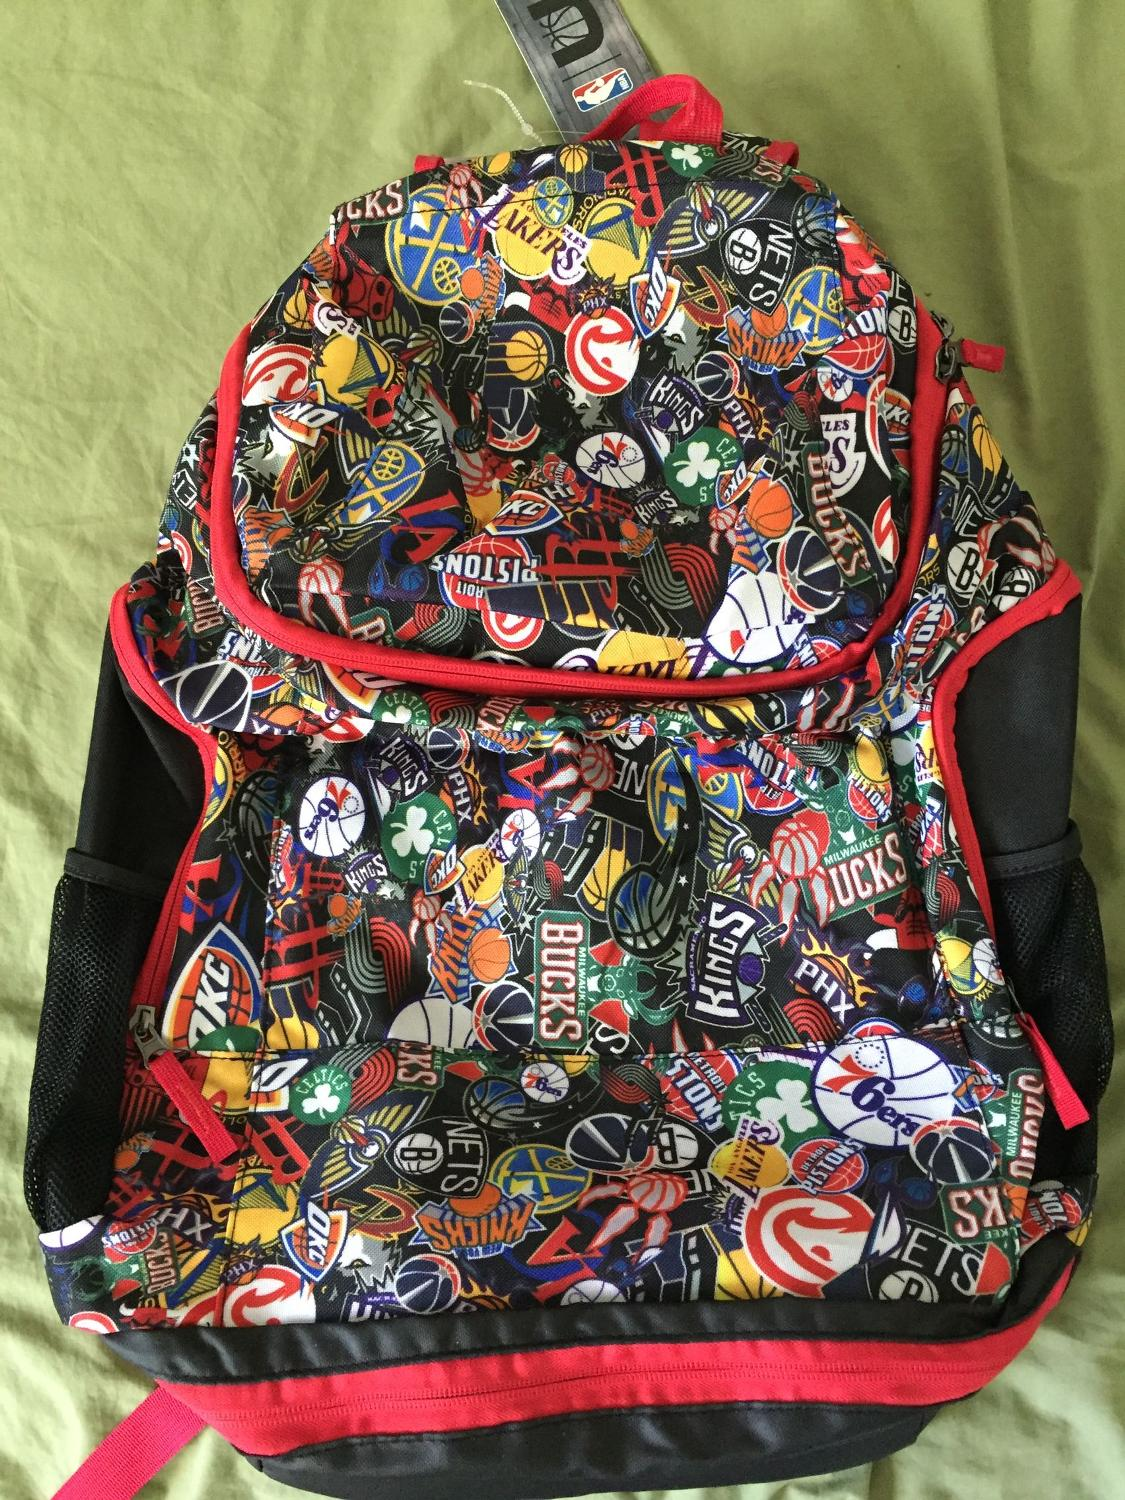 Best nba backpack with every team logo rare red trim